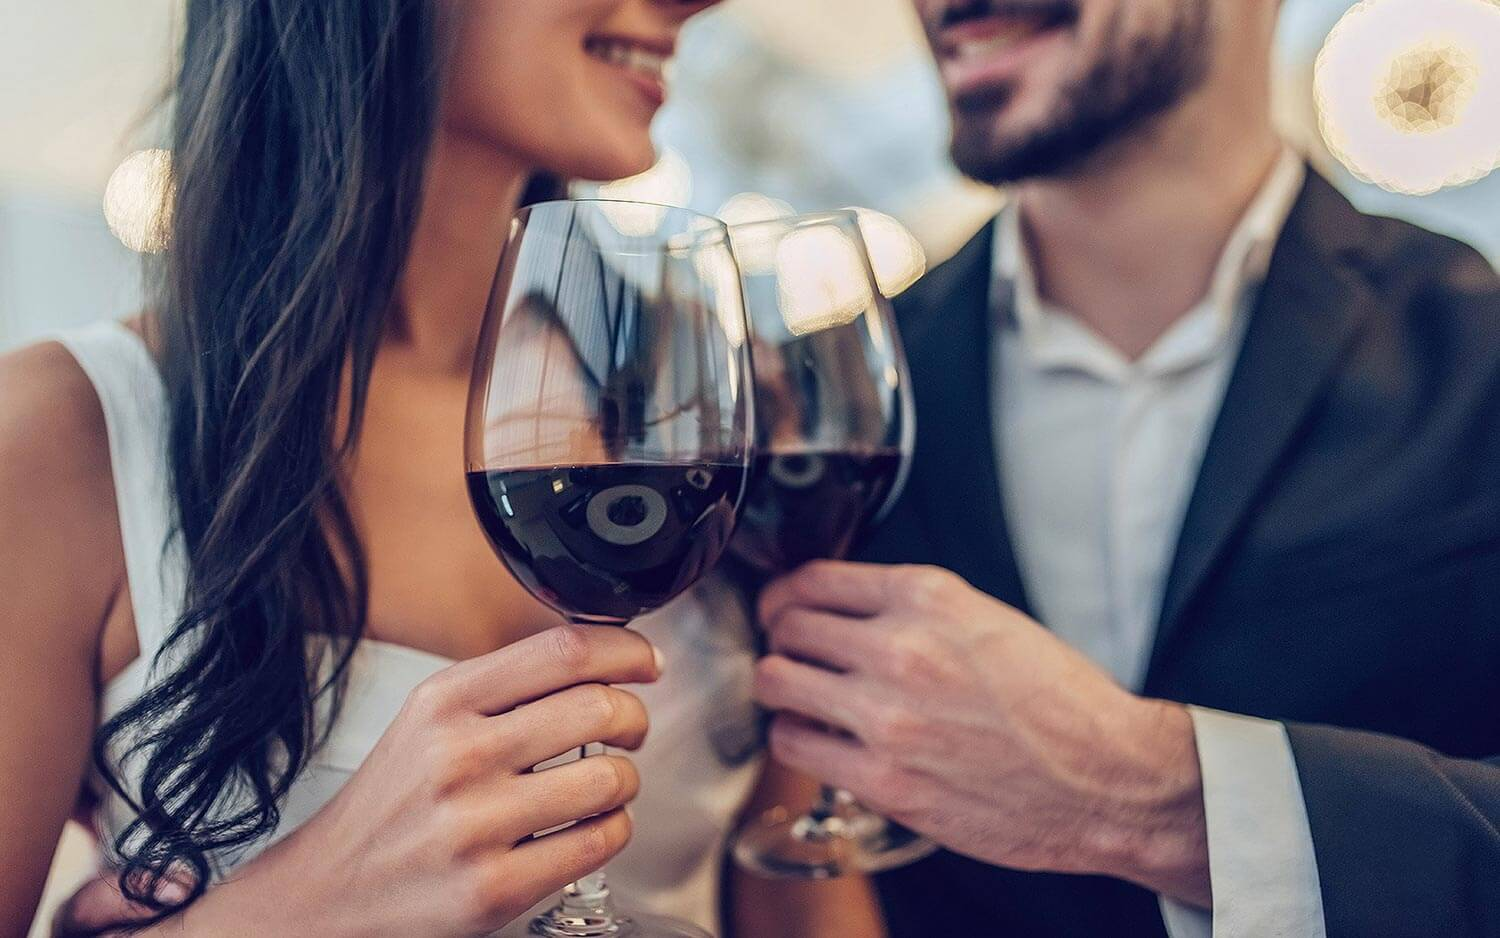 Man and woman clinking wine glasses together